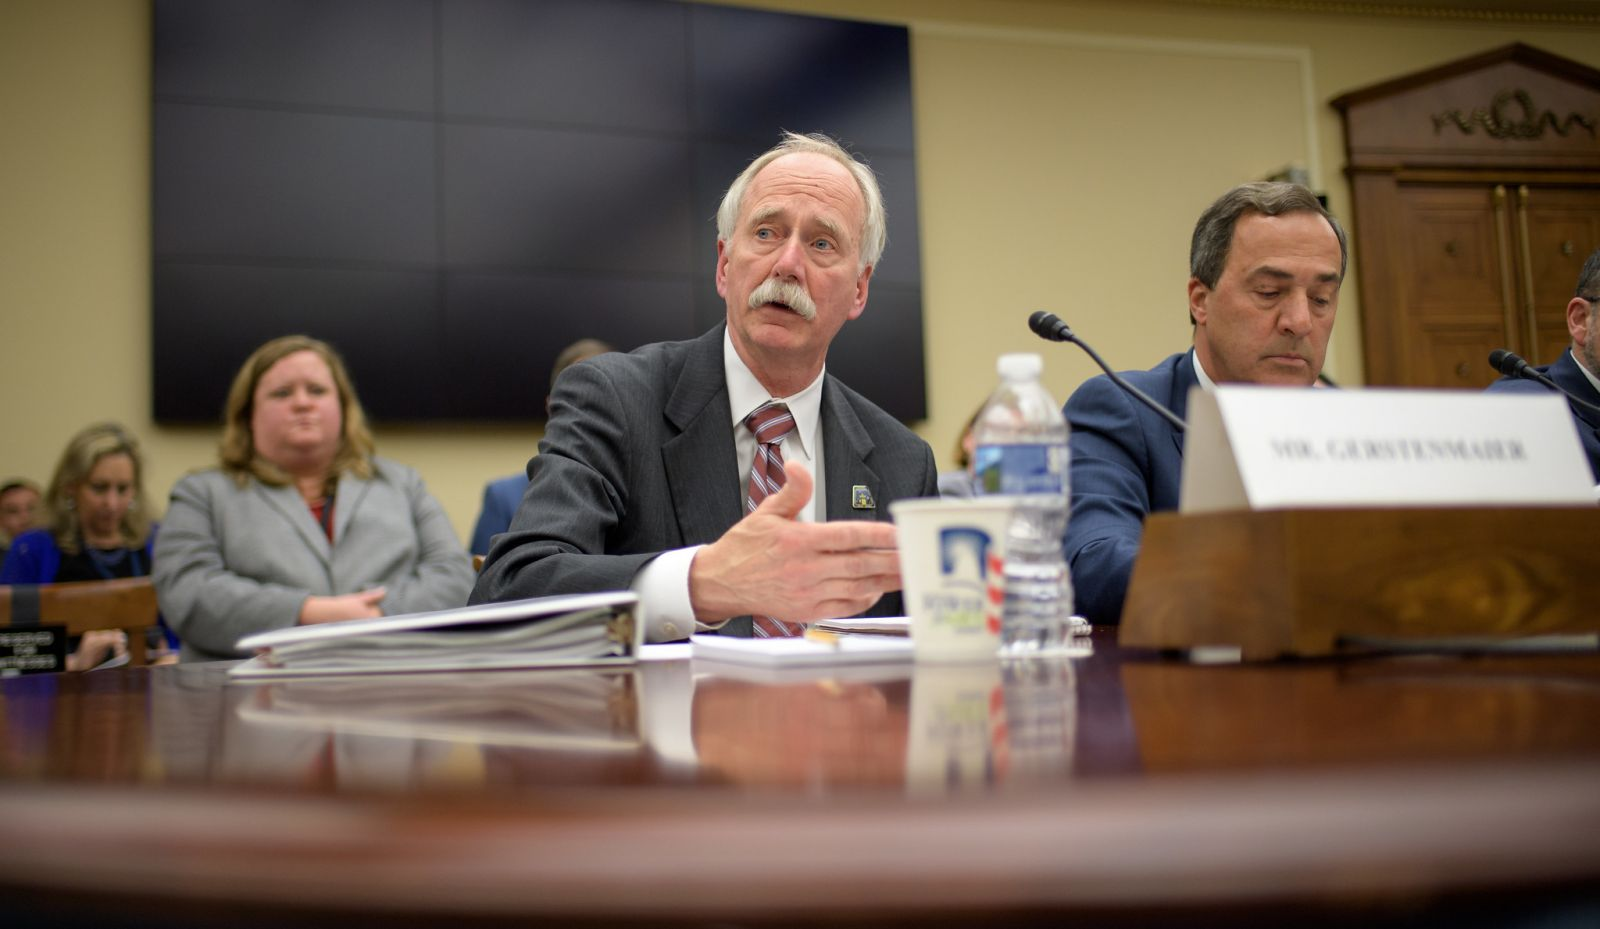 NASA Associate Administrator for Human Exploration and Operations William Gerstenmaier testifies during a House Subcommittee on Space and Aeronautics hearing on May 8, 2019. Photo Credit: Bill Ingalls / NASA